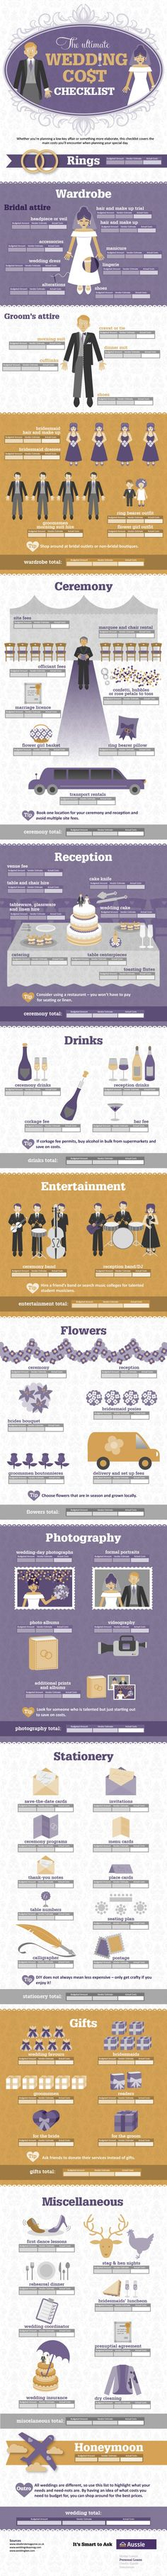 The Ultimate Wedding Cost Checklist | NerdGraph Infographics